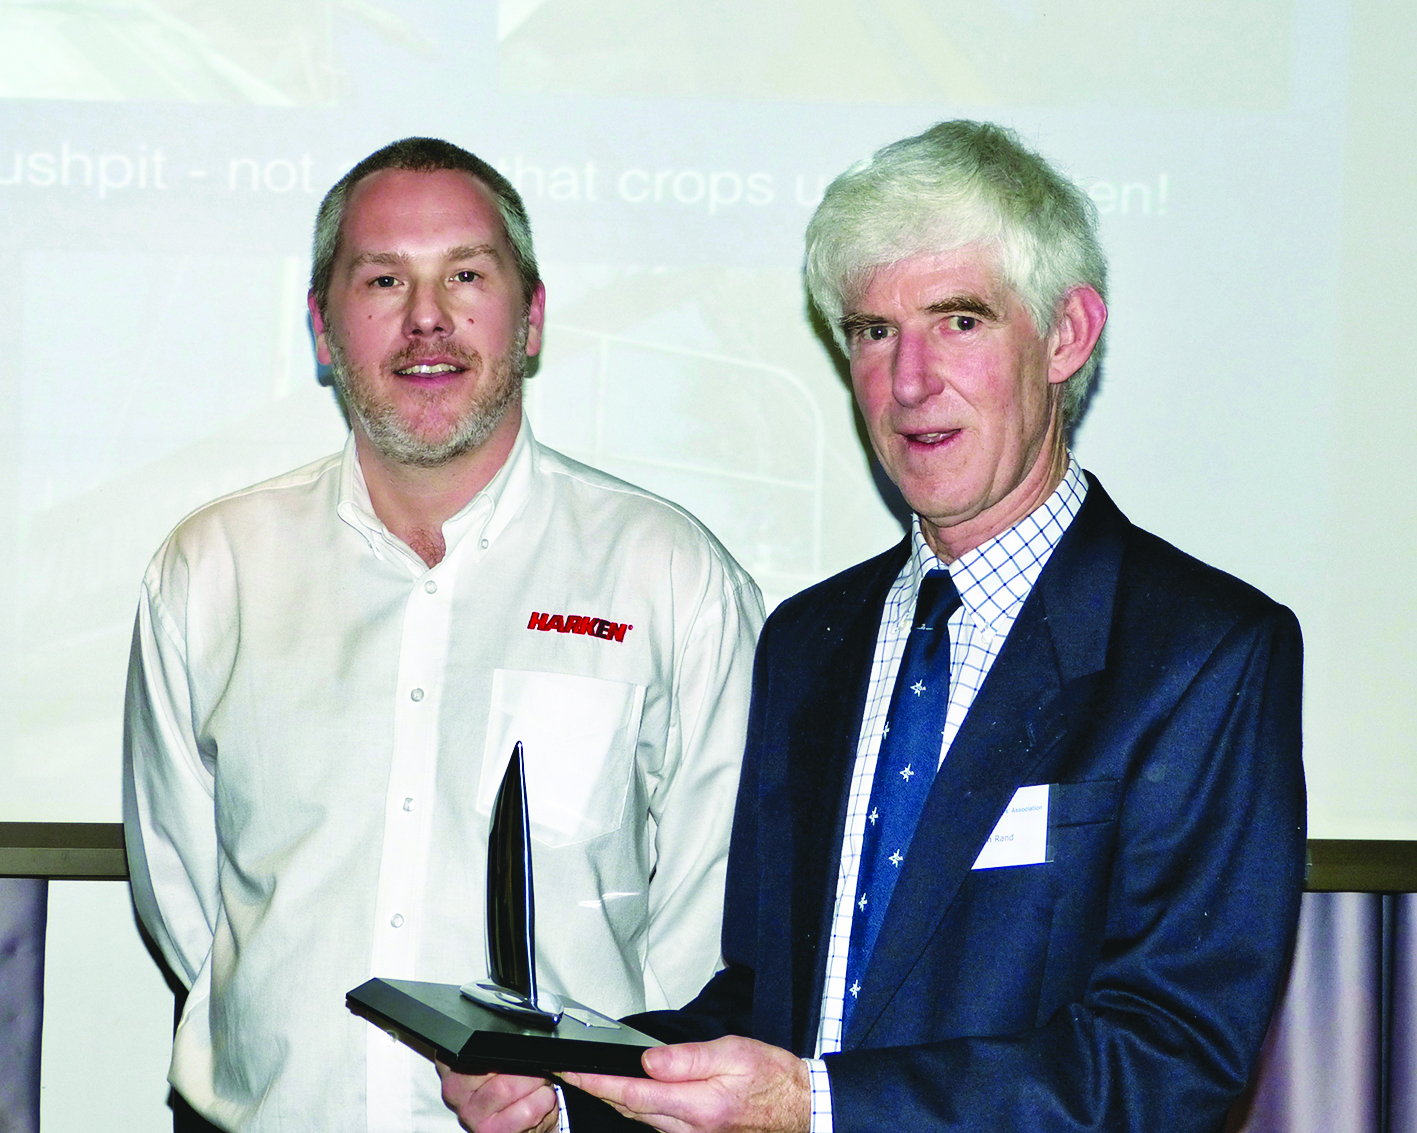 Alan Rand  was awarded the Harken Trophy for his technical article